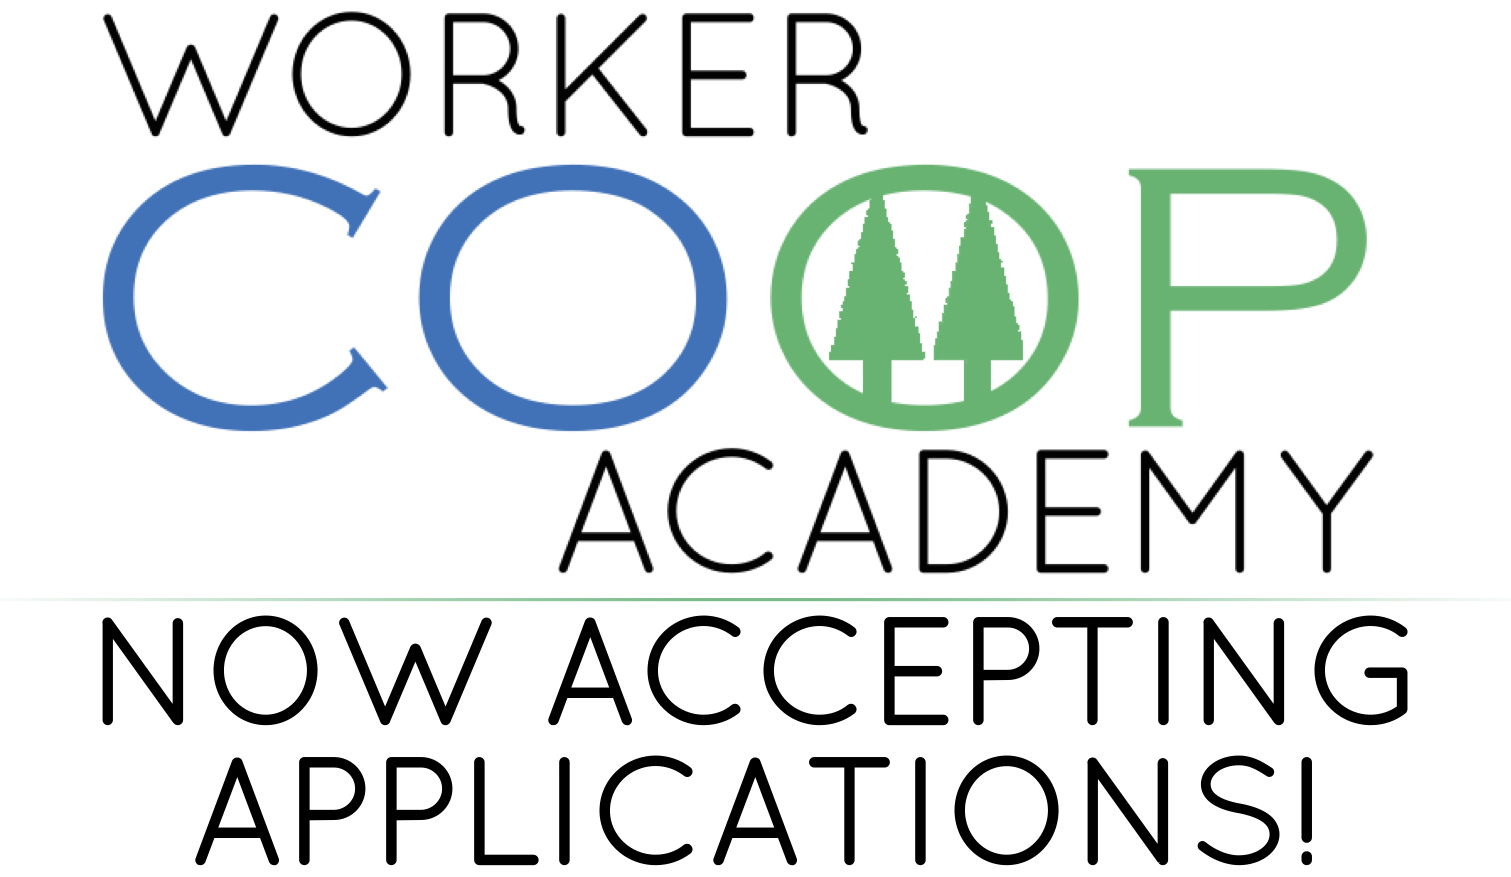 Now accepting applications to the 2015 Worker Coop Academy!